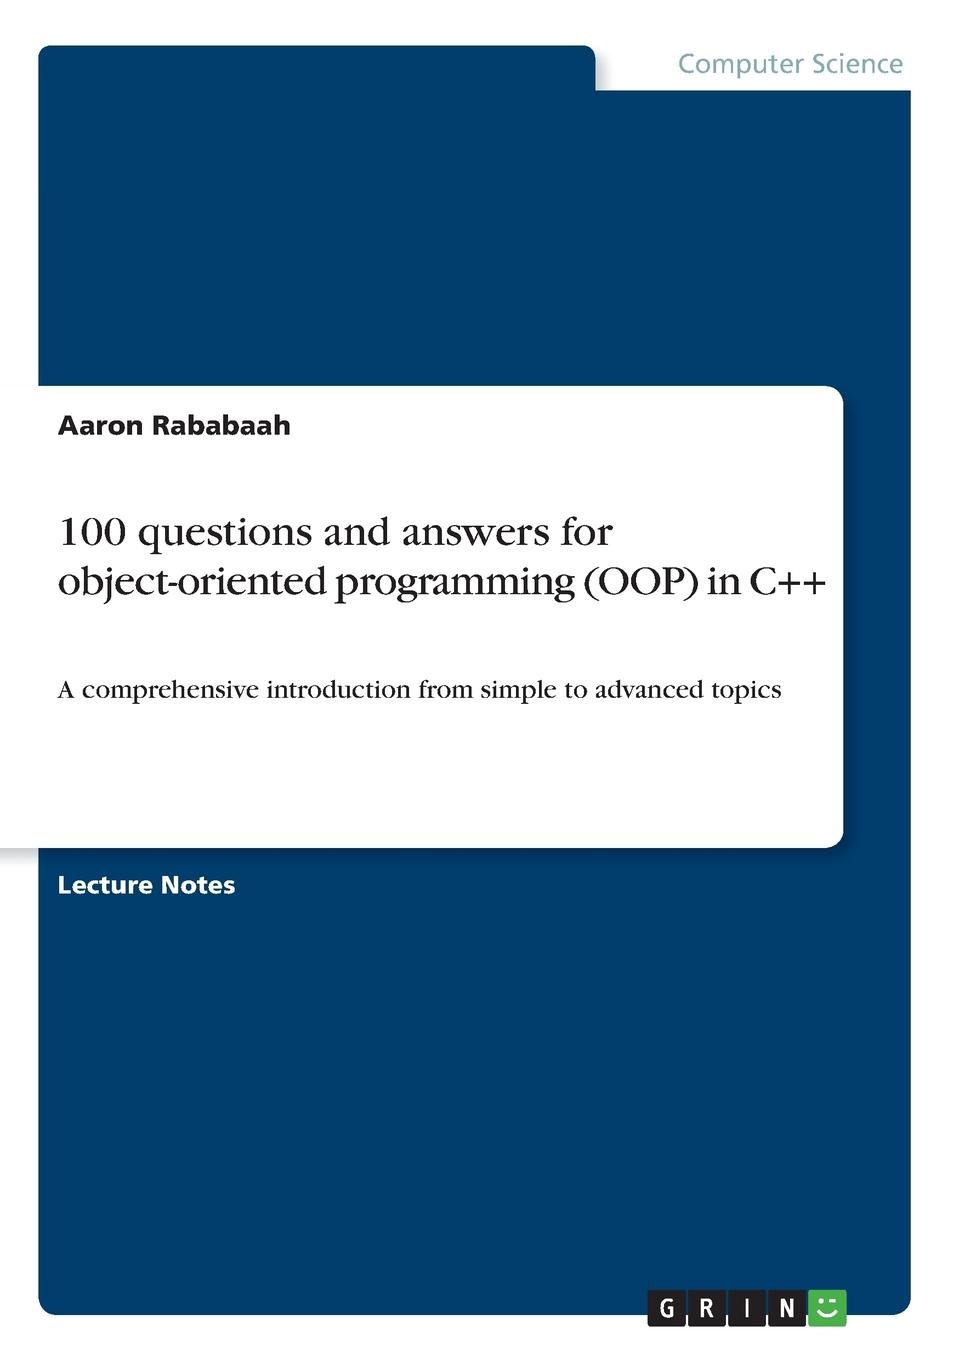 Aaron Rababaah 100 questions and answers for object-oriented programming (OOP) in C..